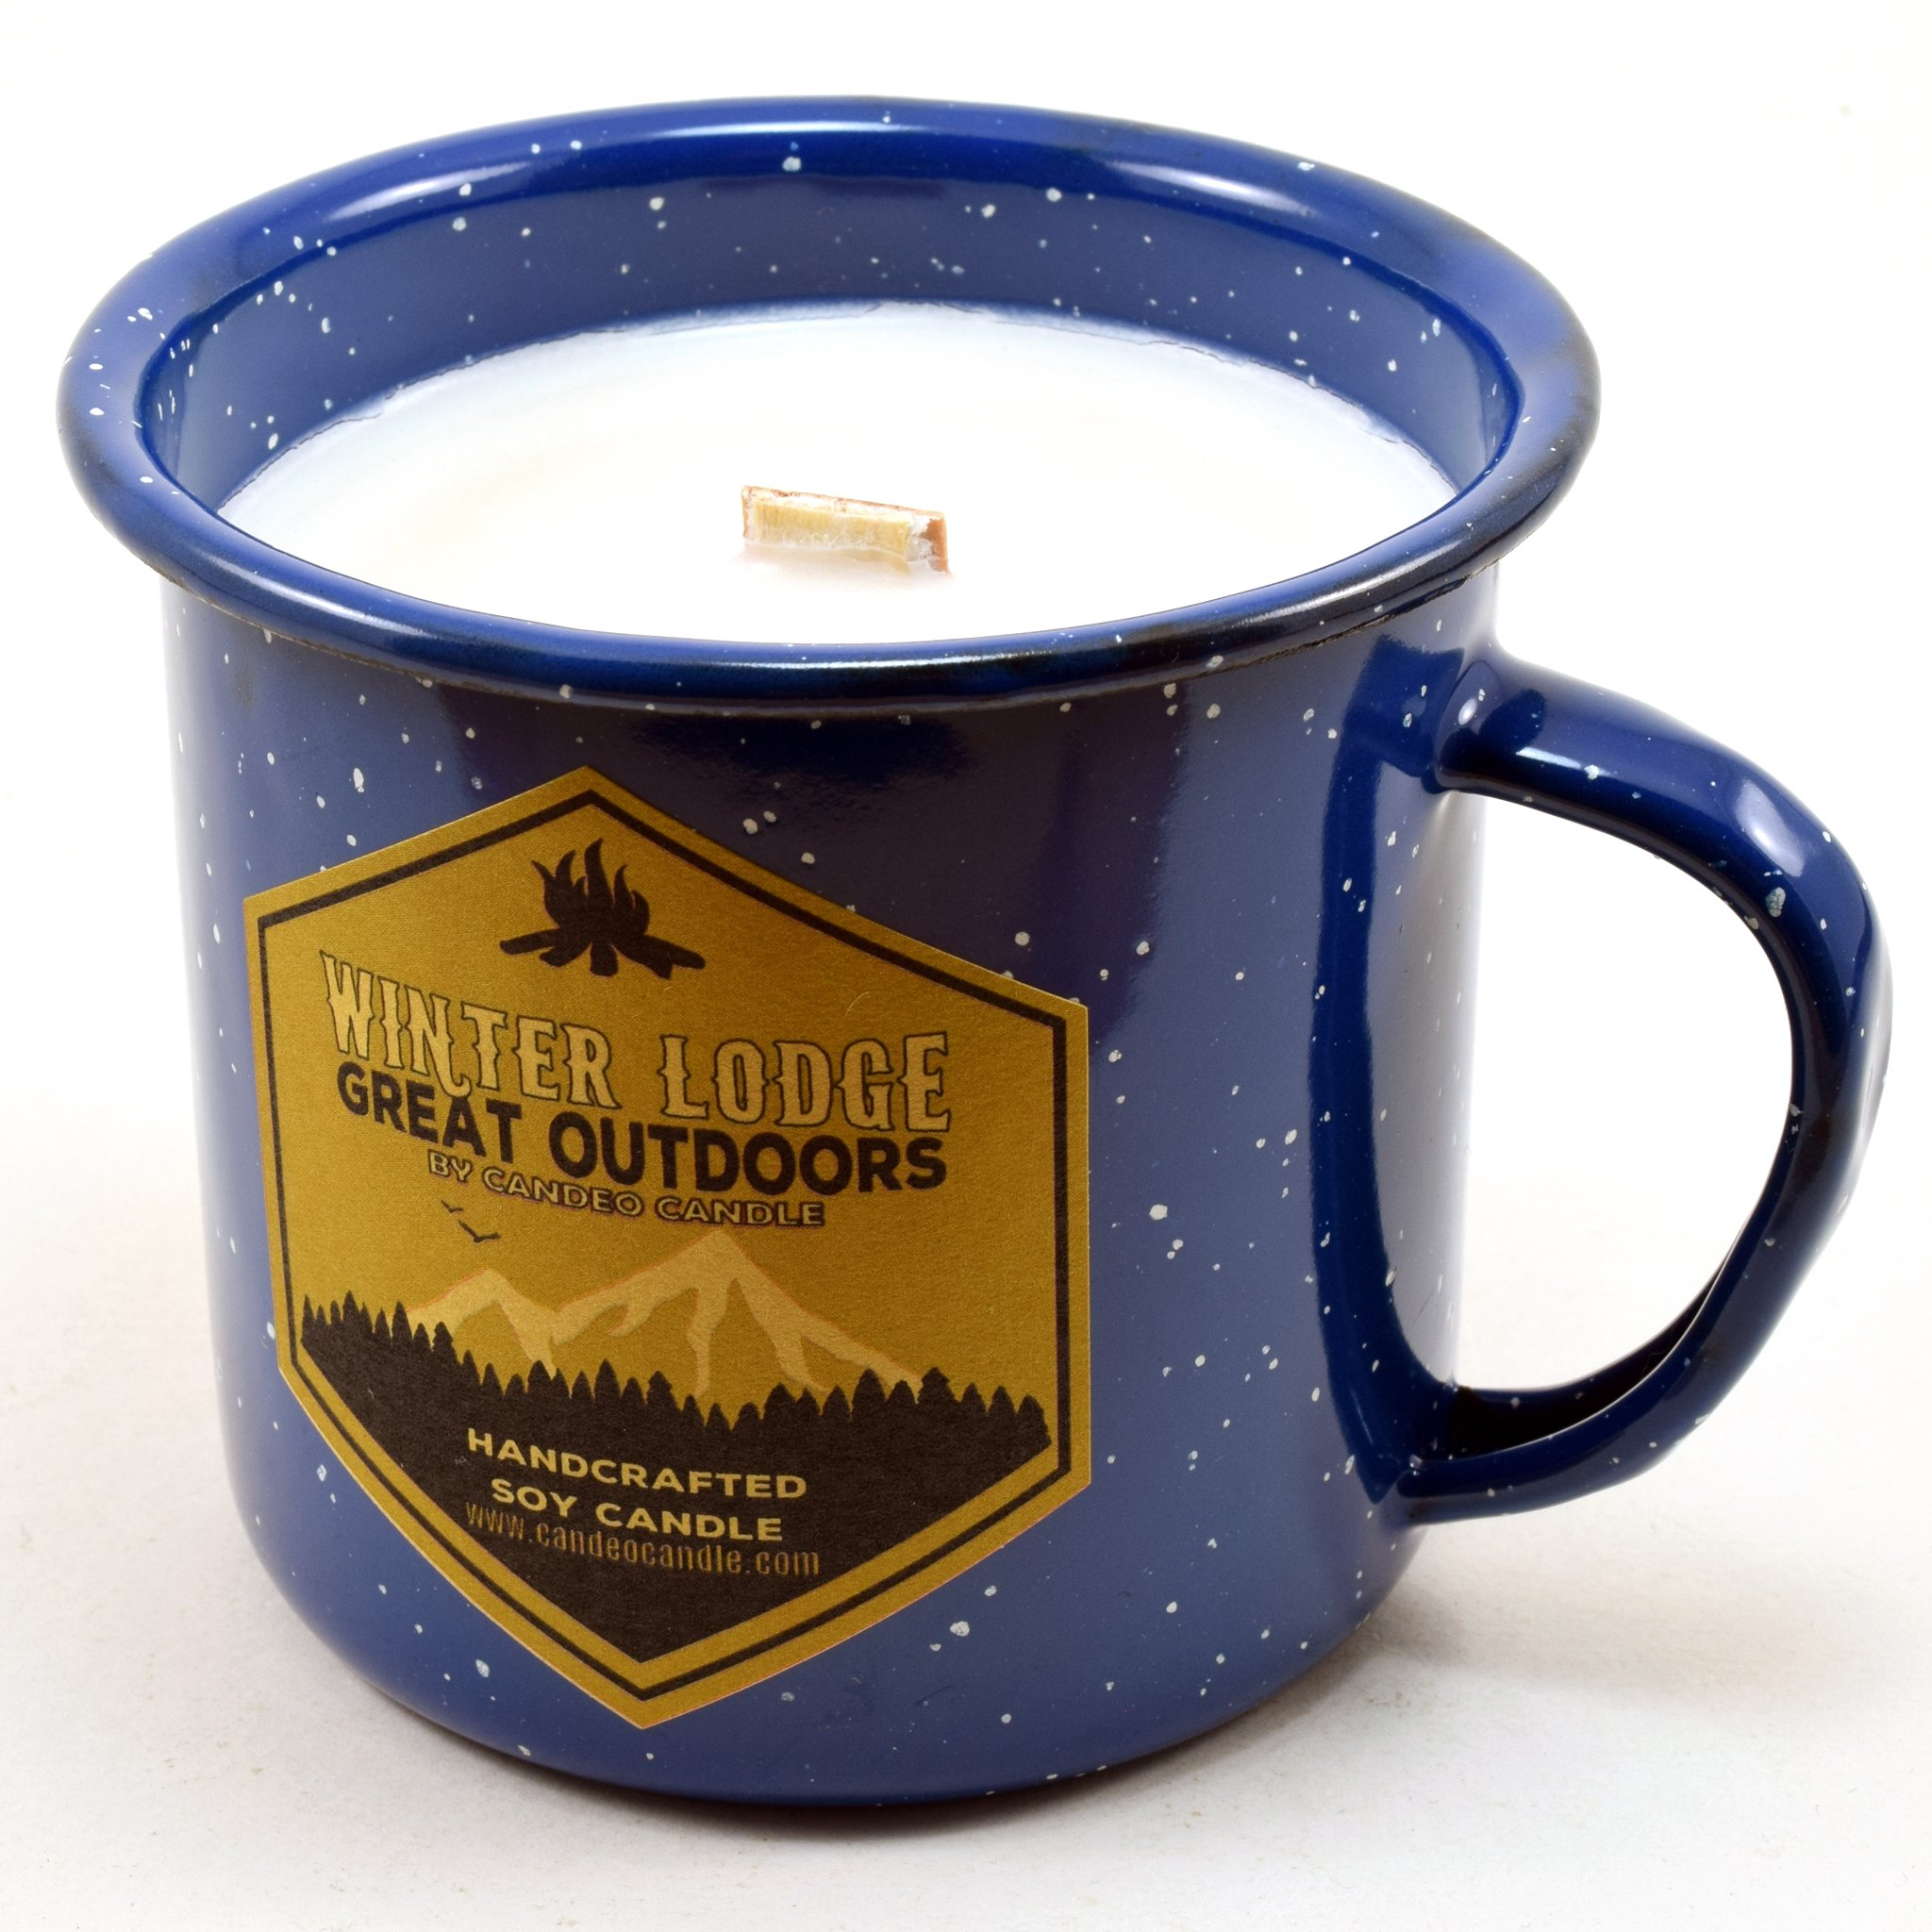 Winter Lodge Wood Wick Soy Candle in an Enamel Camping Mug, 10 oz